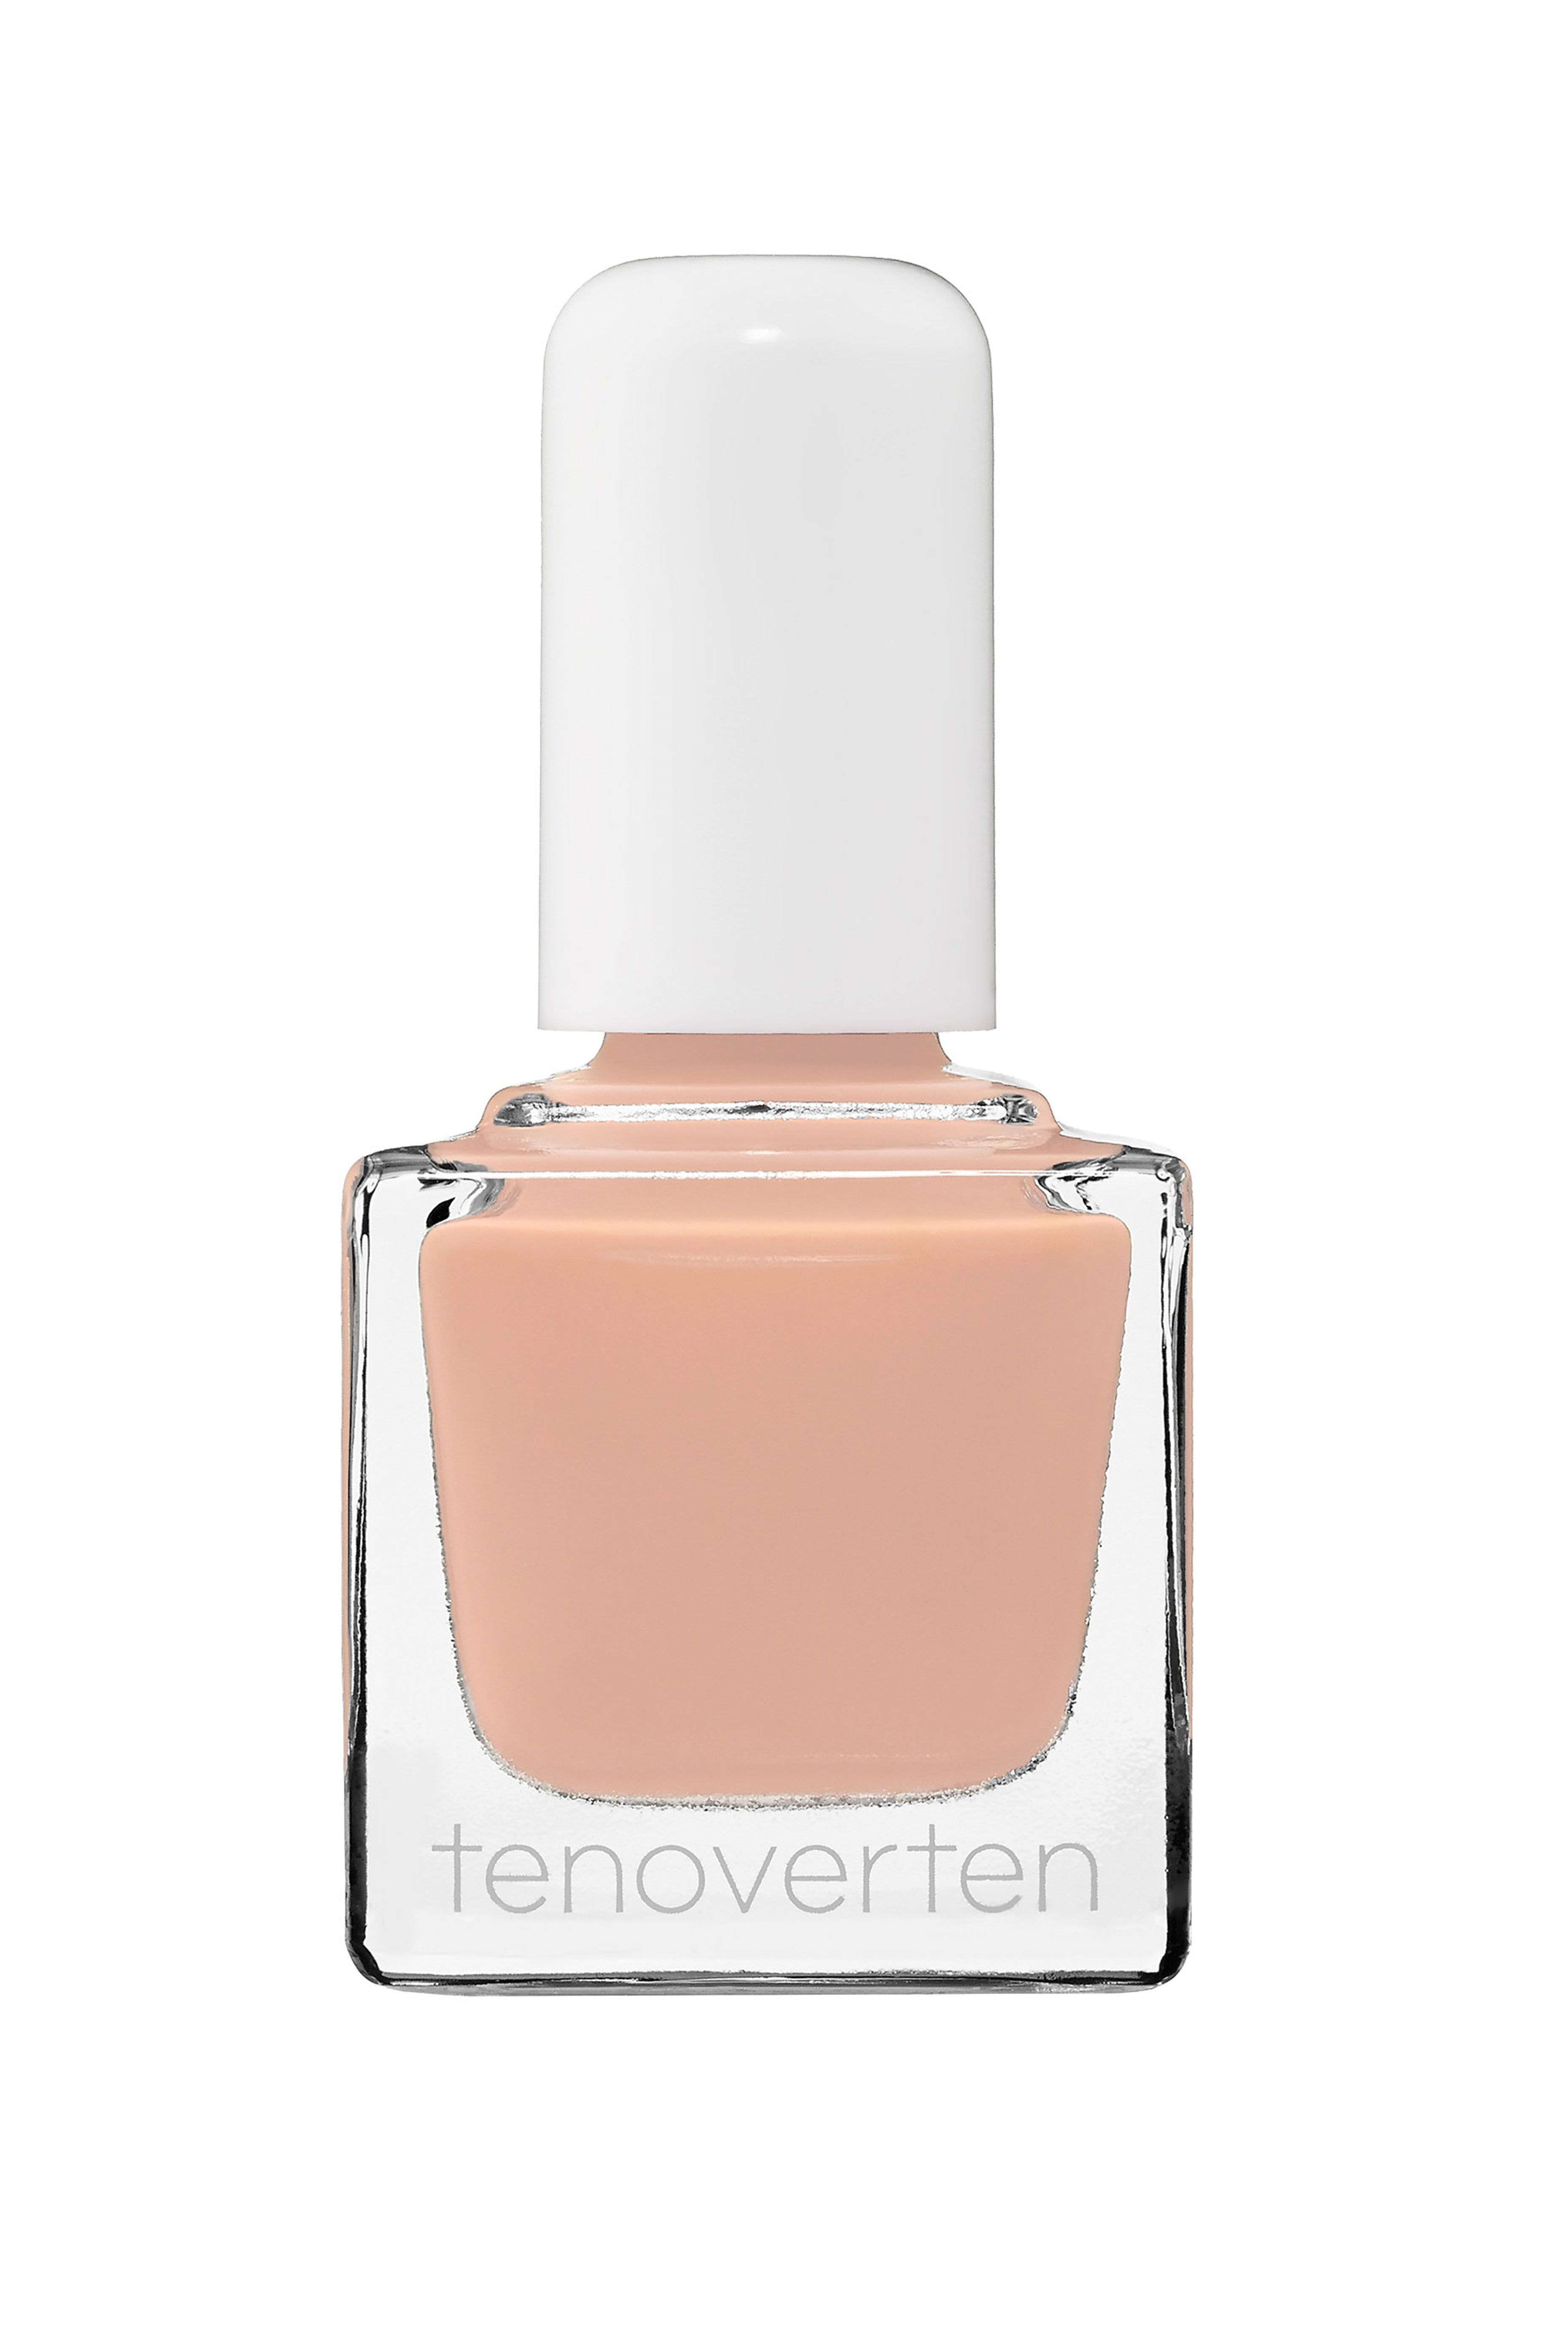 32 Nude Nail Polish Colors - Find the Best Neutral Nail Colors for